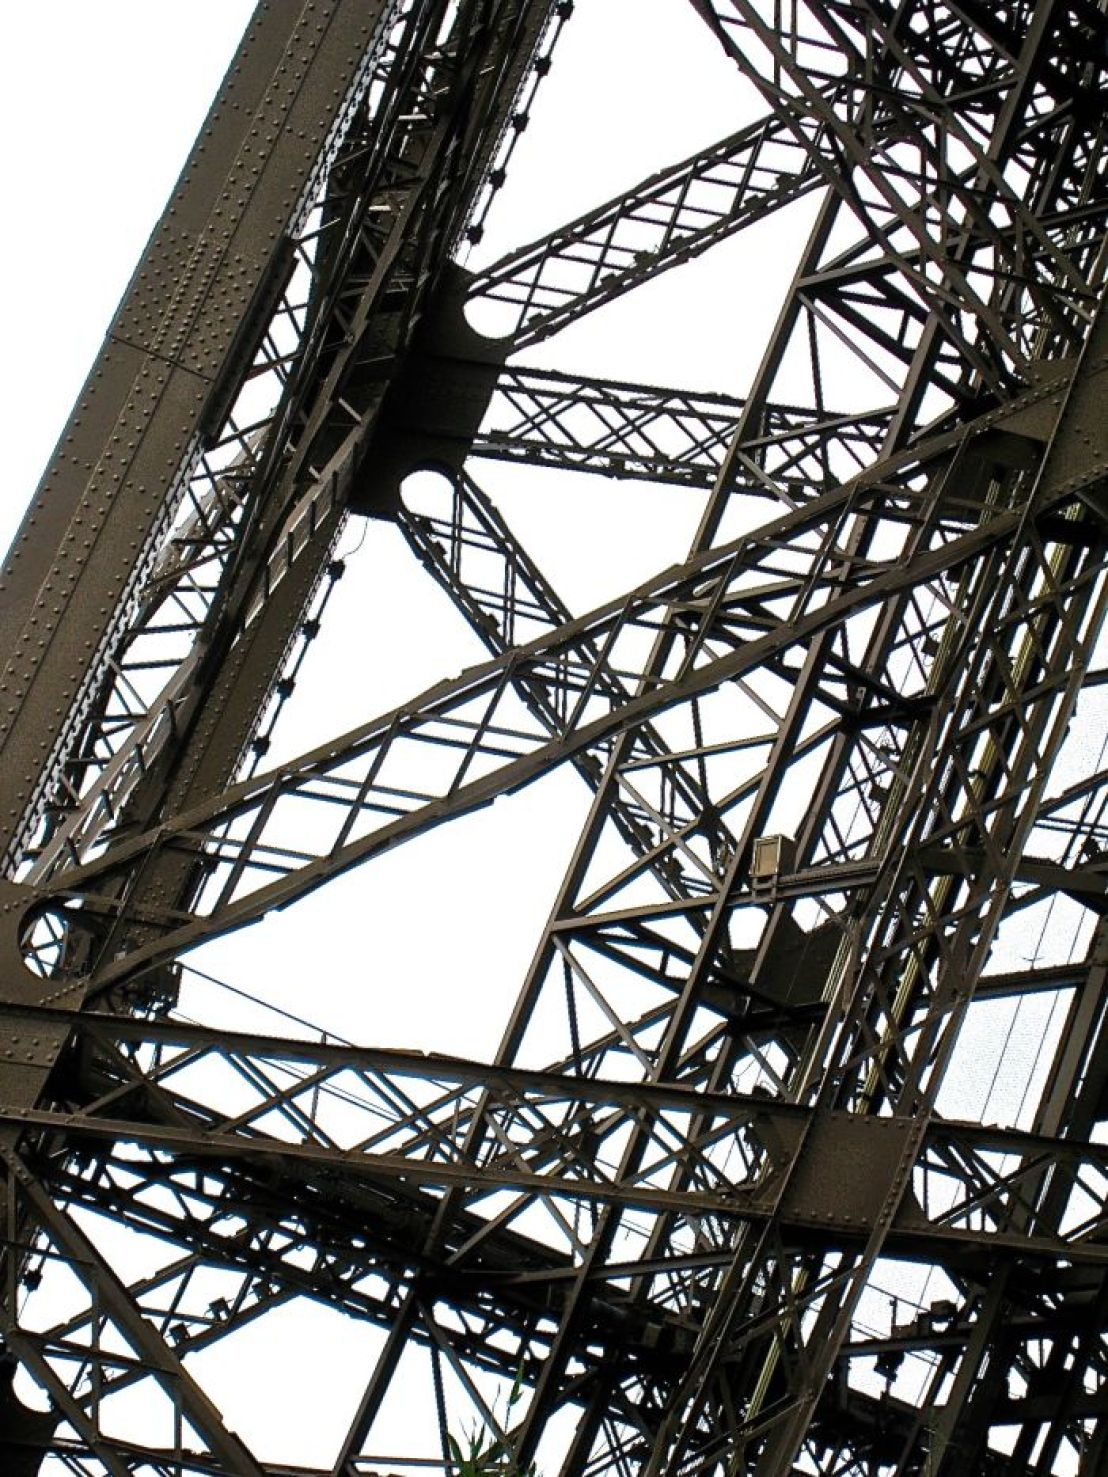 Closeup of the ironwork of Eiffel Tower